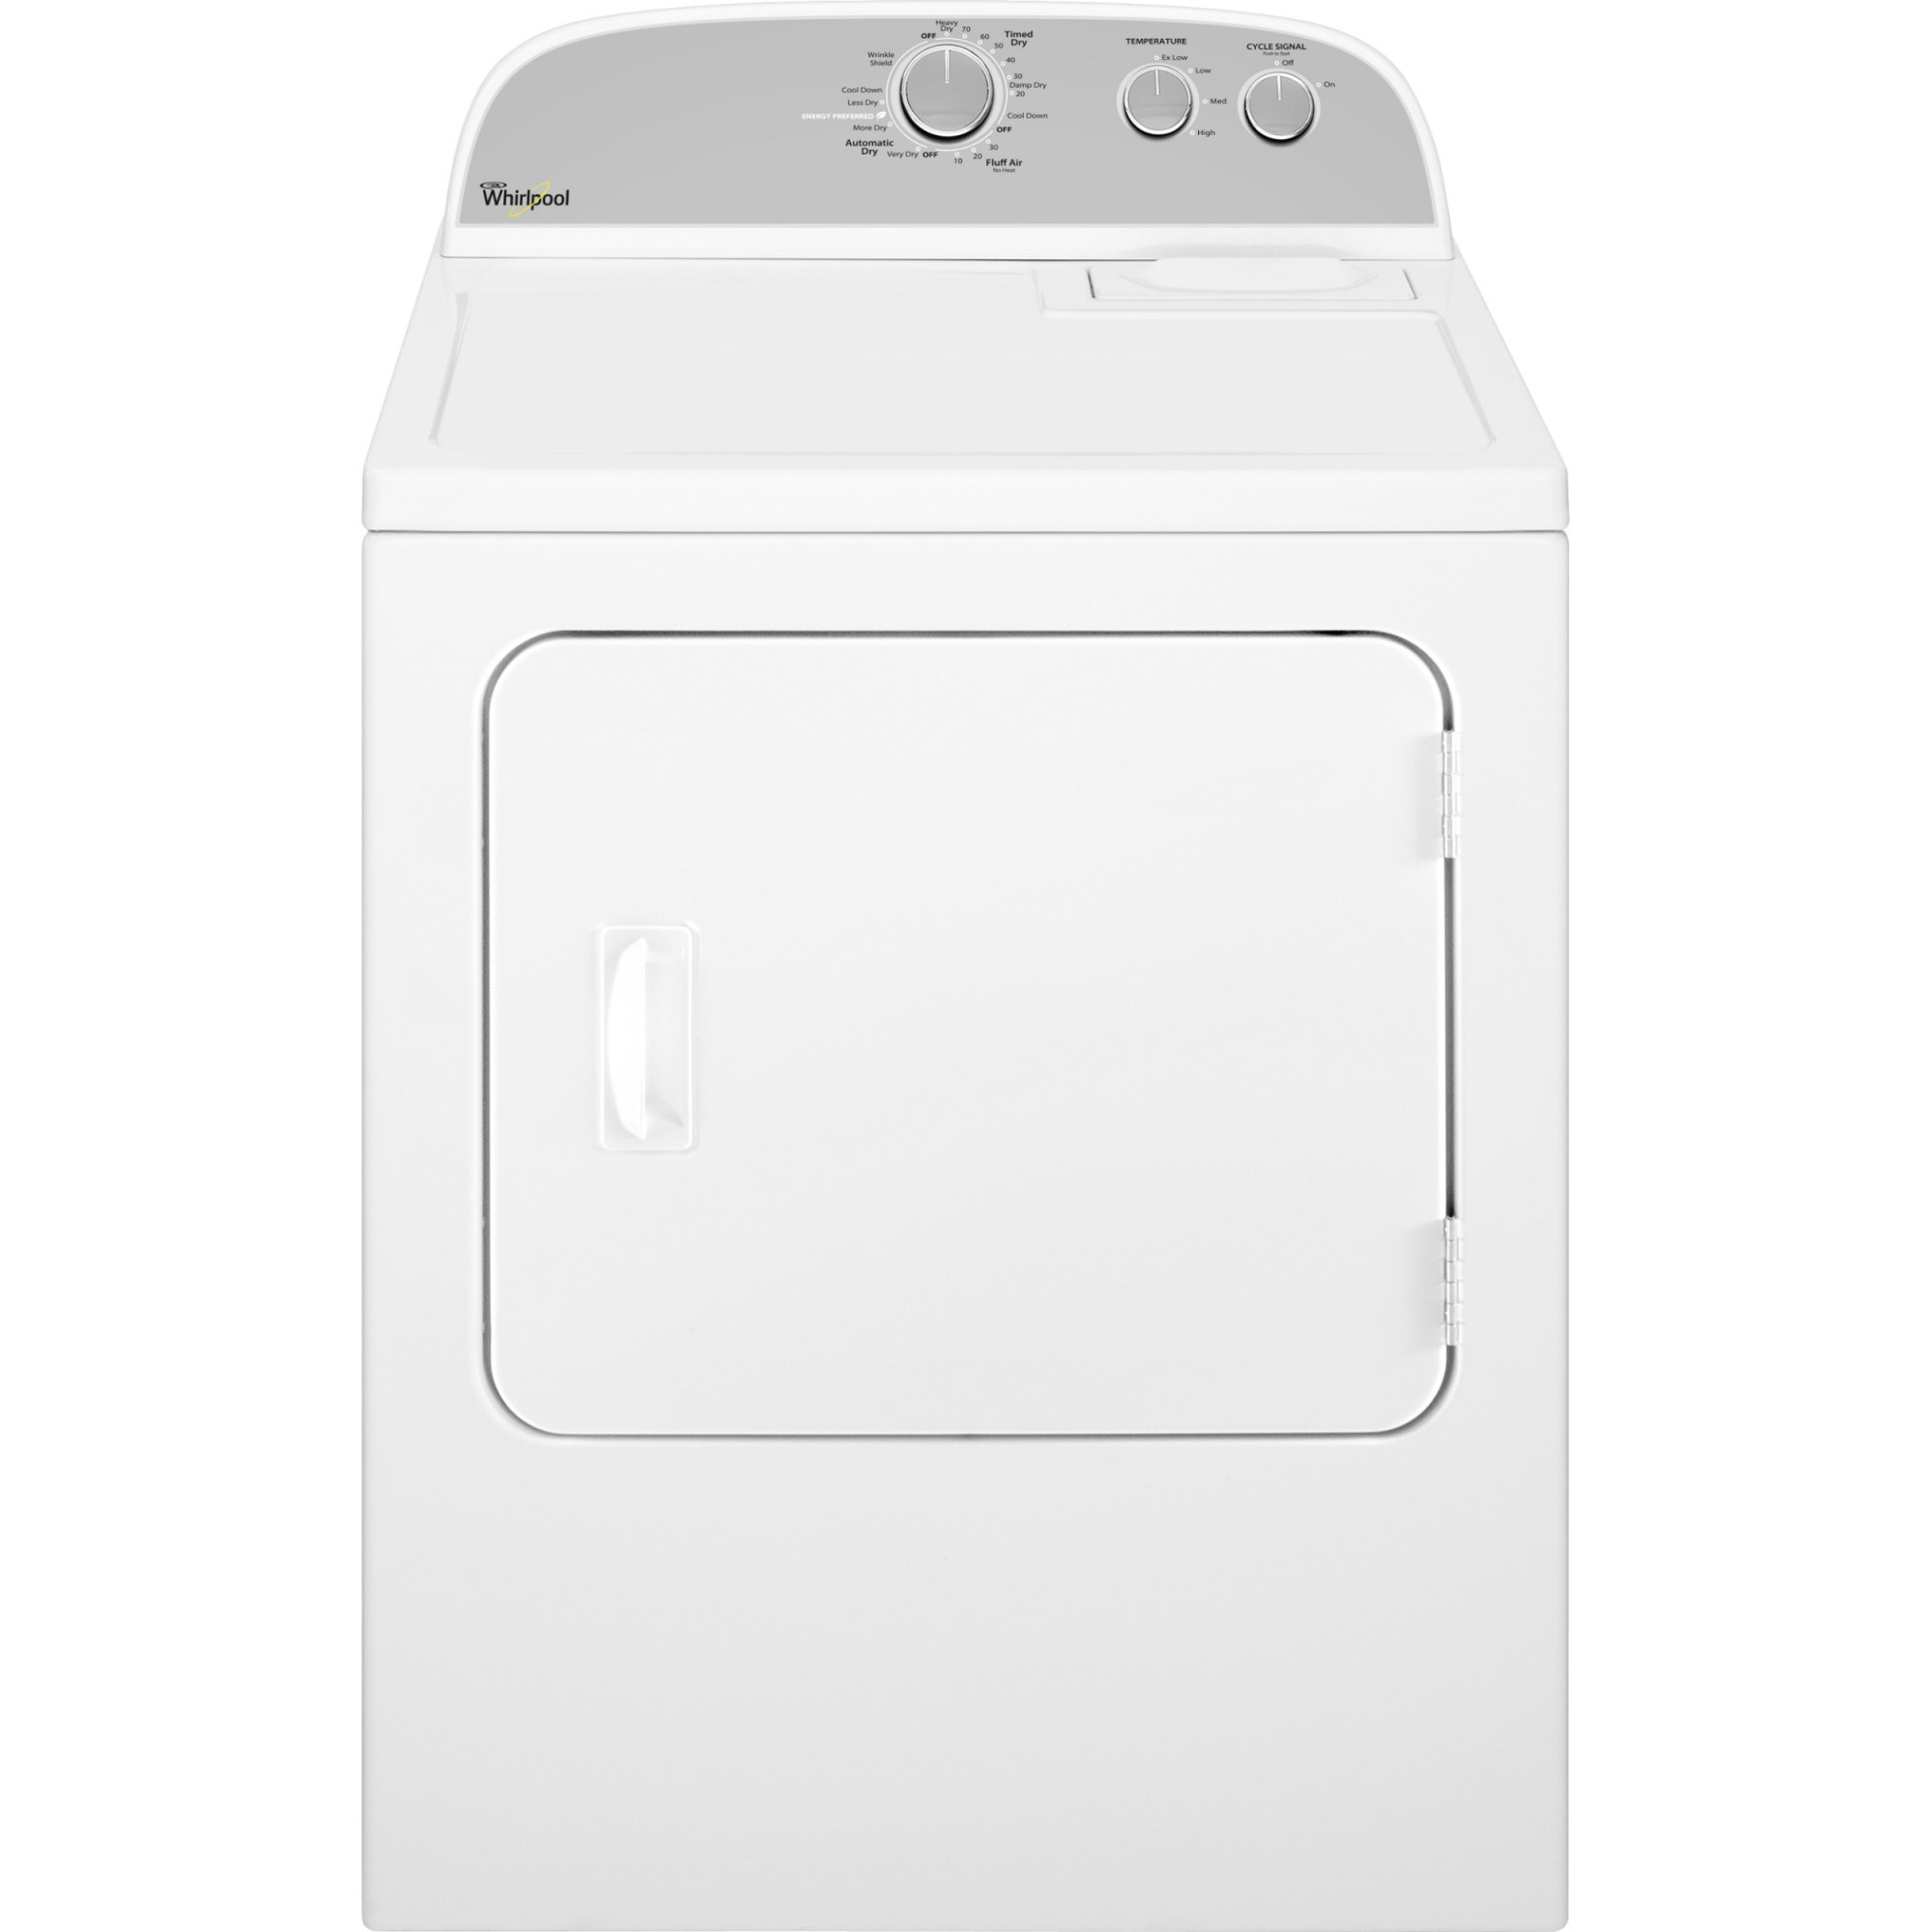 hight resolution of whirlpool gas dryer walmart comwiring diagram whirlpool dryer model wgd4800bq 16